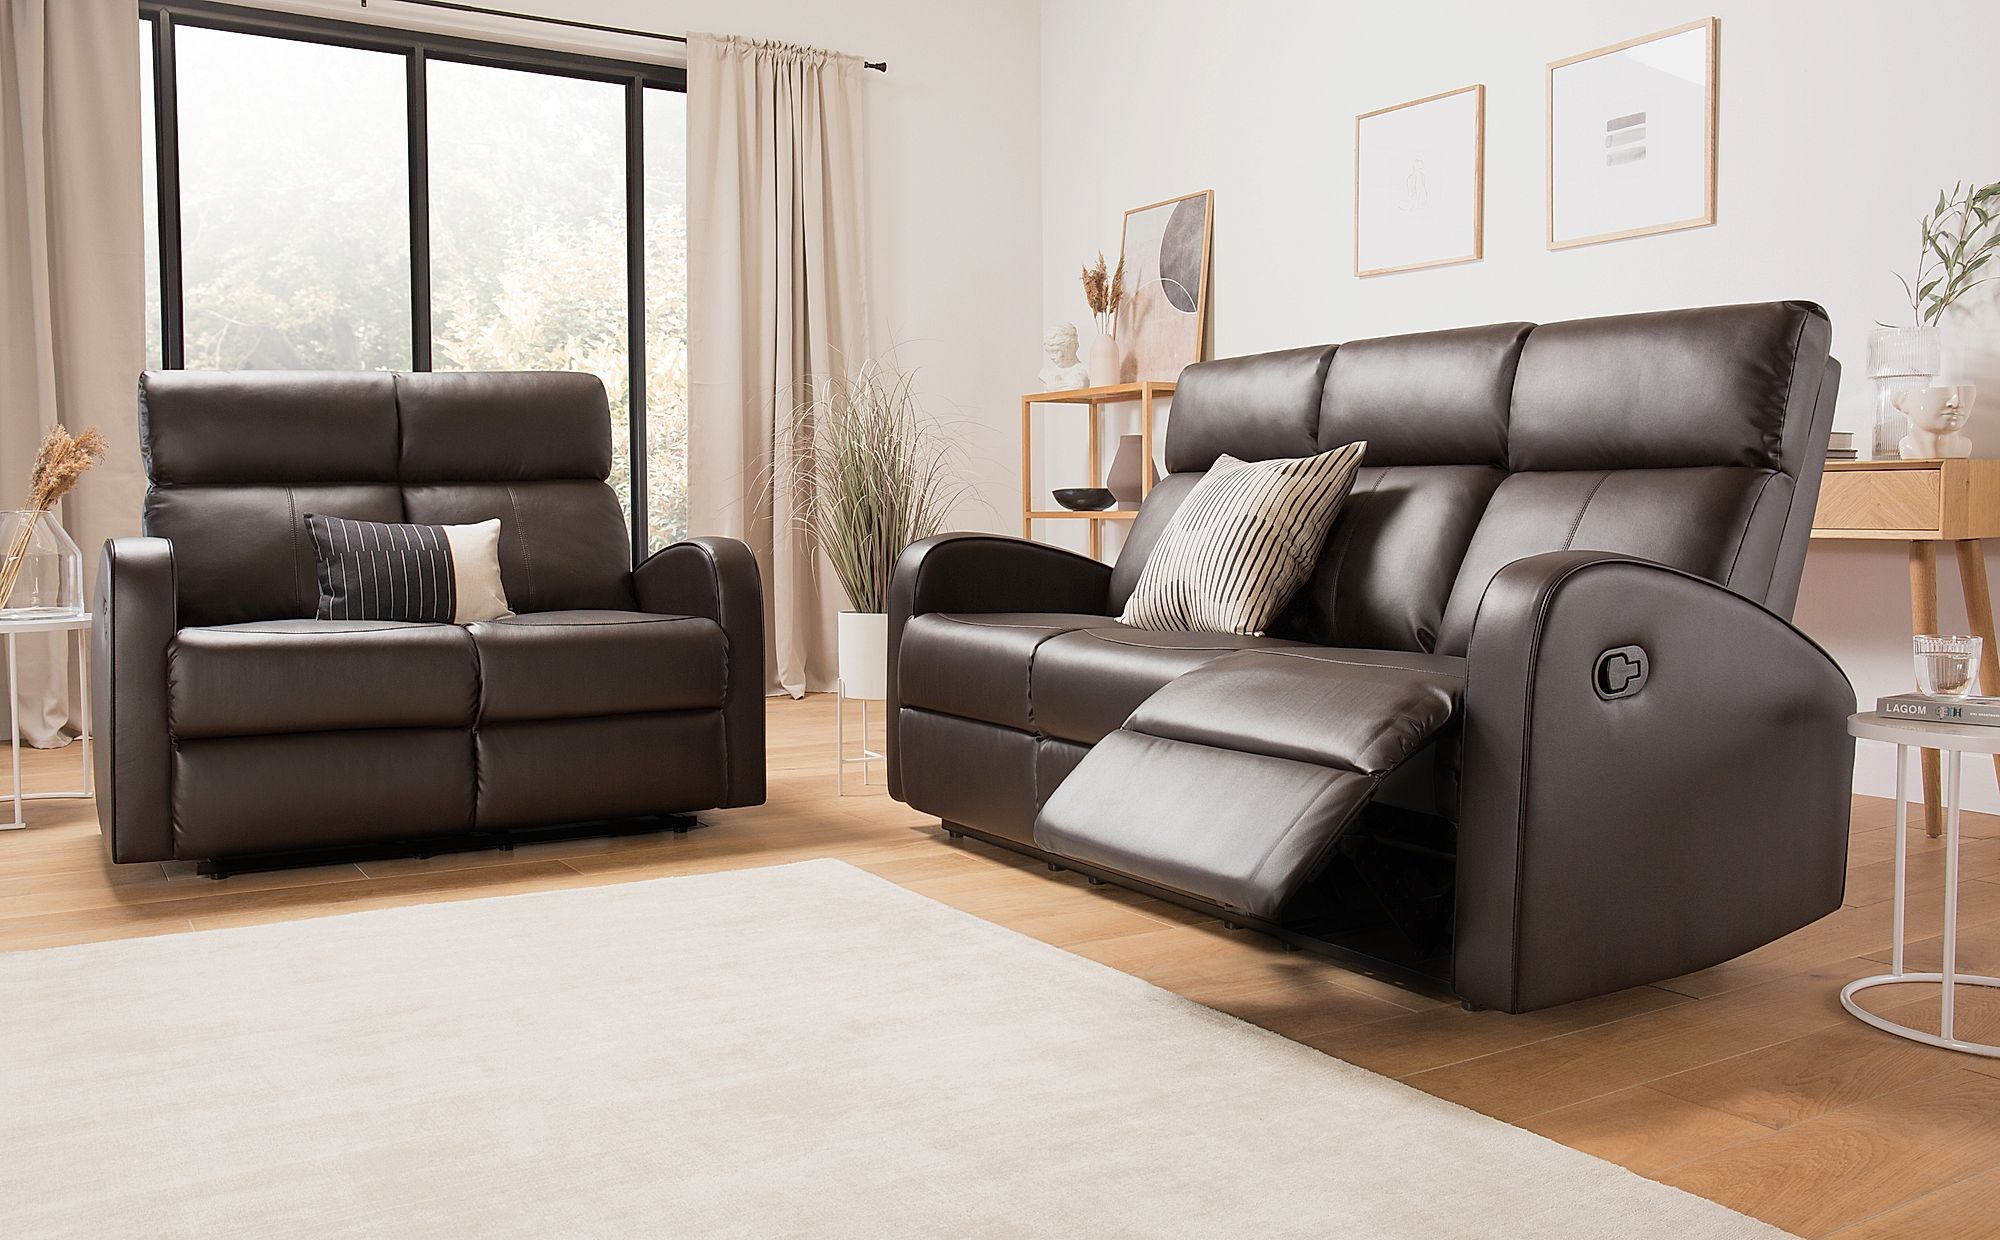 Ashby Brown Leather 3 2 Seater Recliner